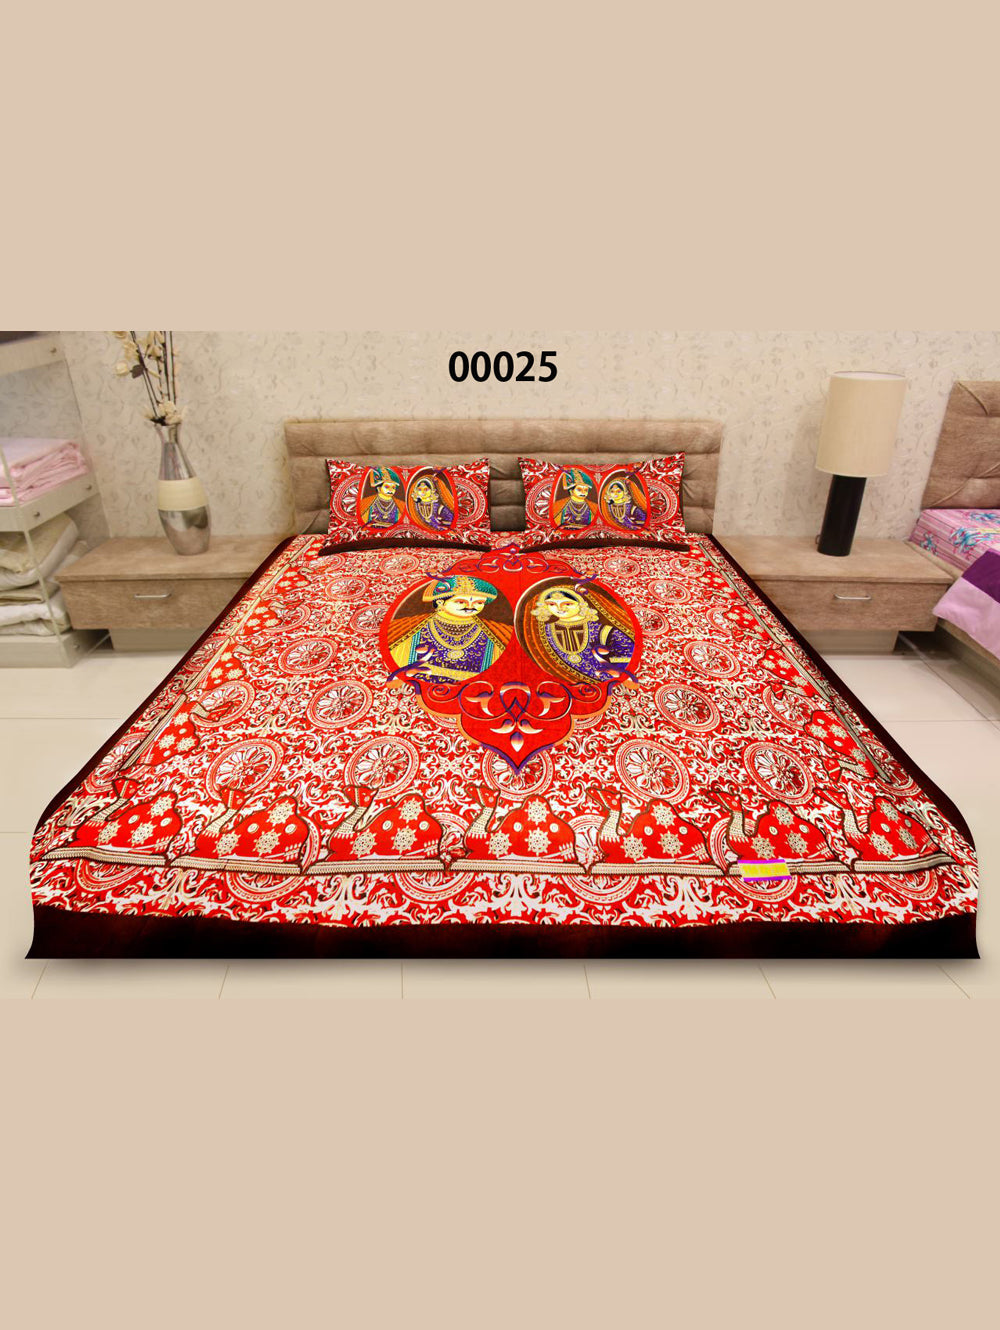 00025Red and Multicolour Traditional Cotton Queen Size Bedsheet With 2 Pillow Covers